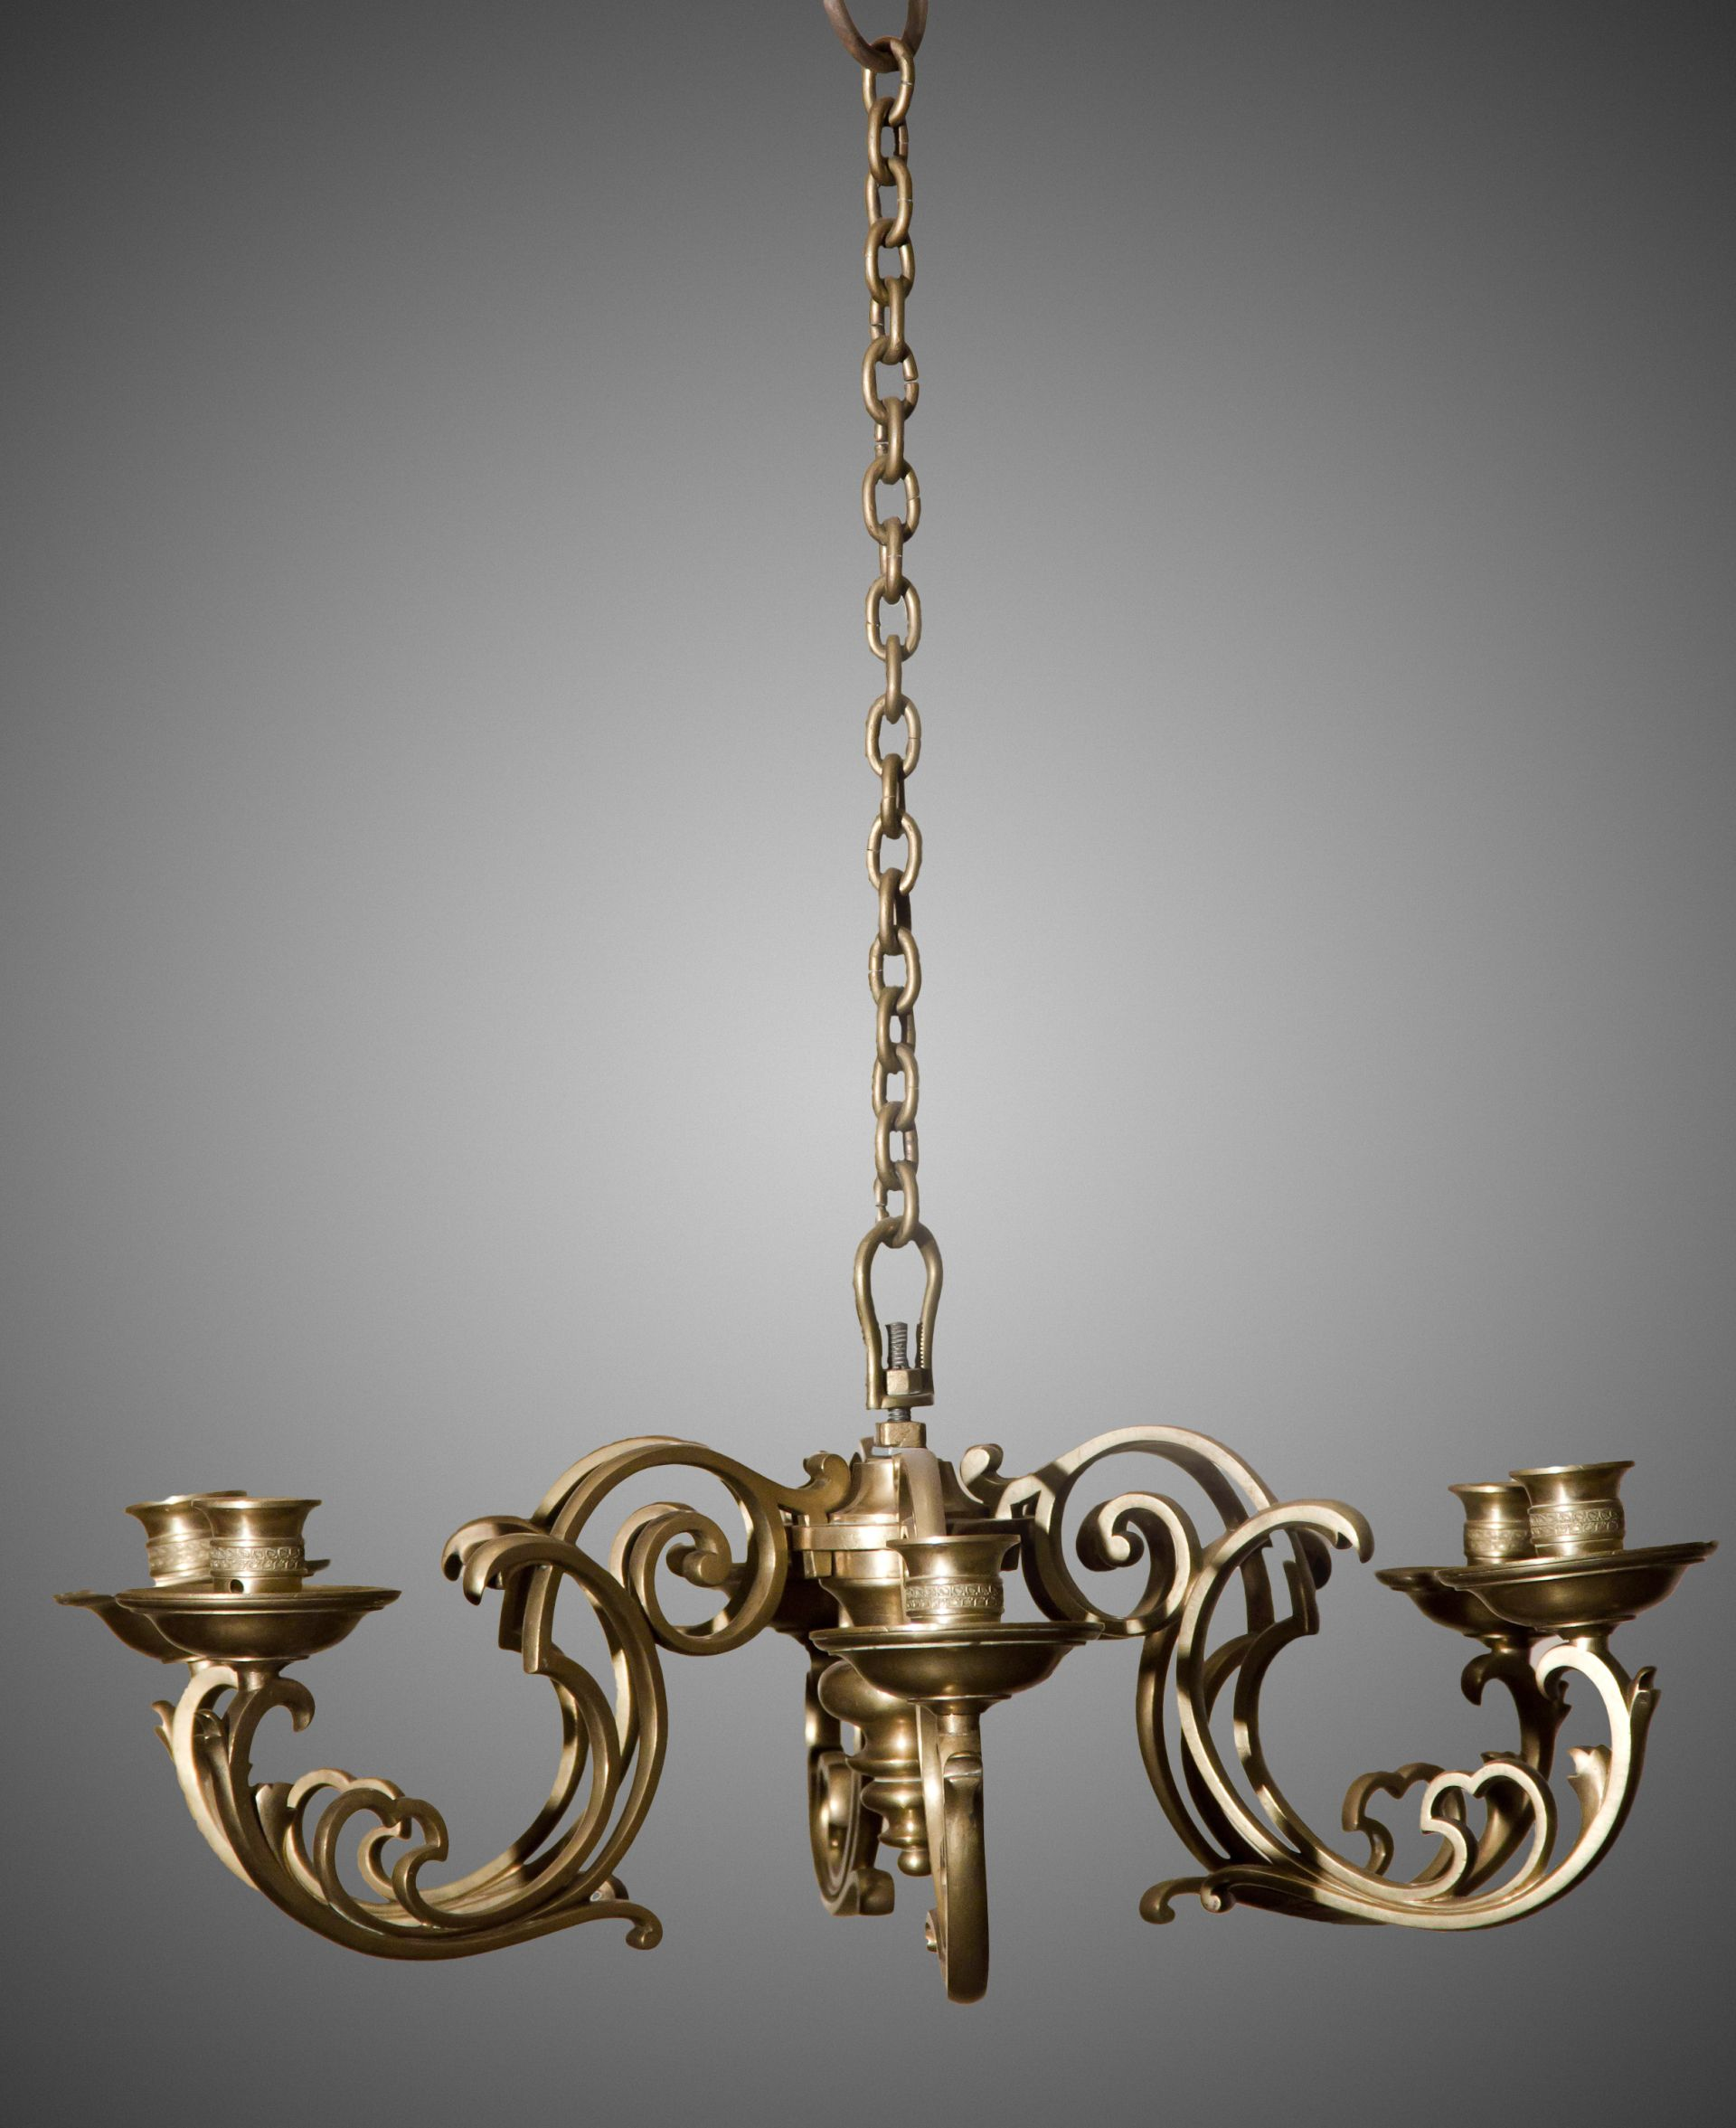 Chandelier, 1825–1875 (?), Lithuanian National Museum of Art, TM-2334. Photo by Tomas Kapočius, 2013